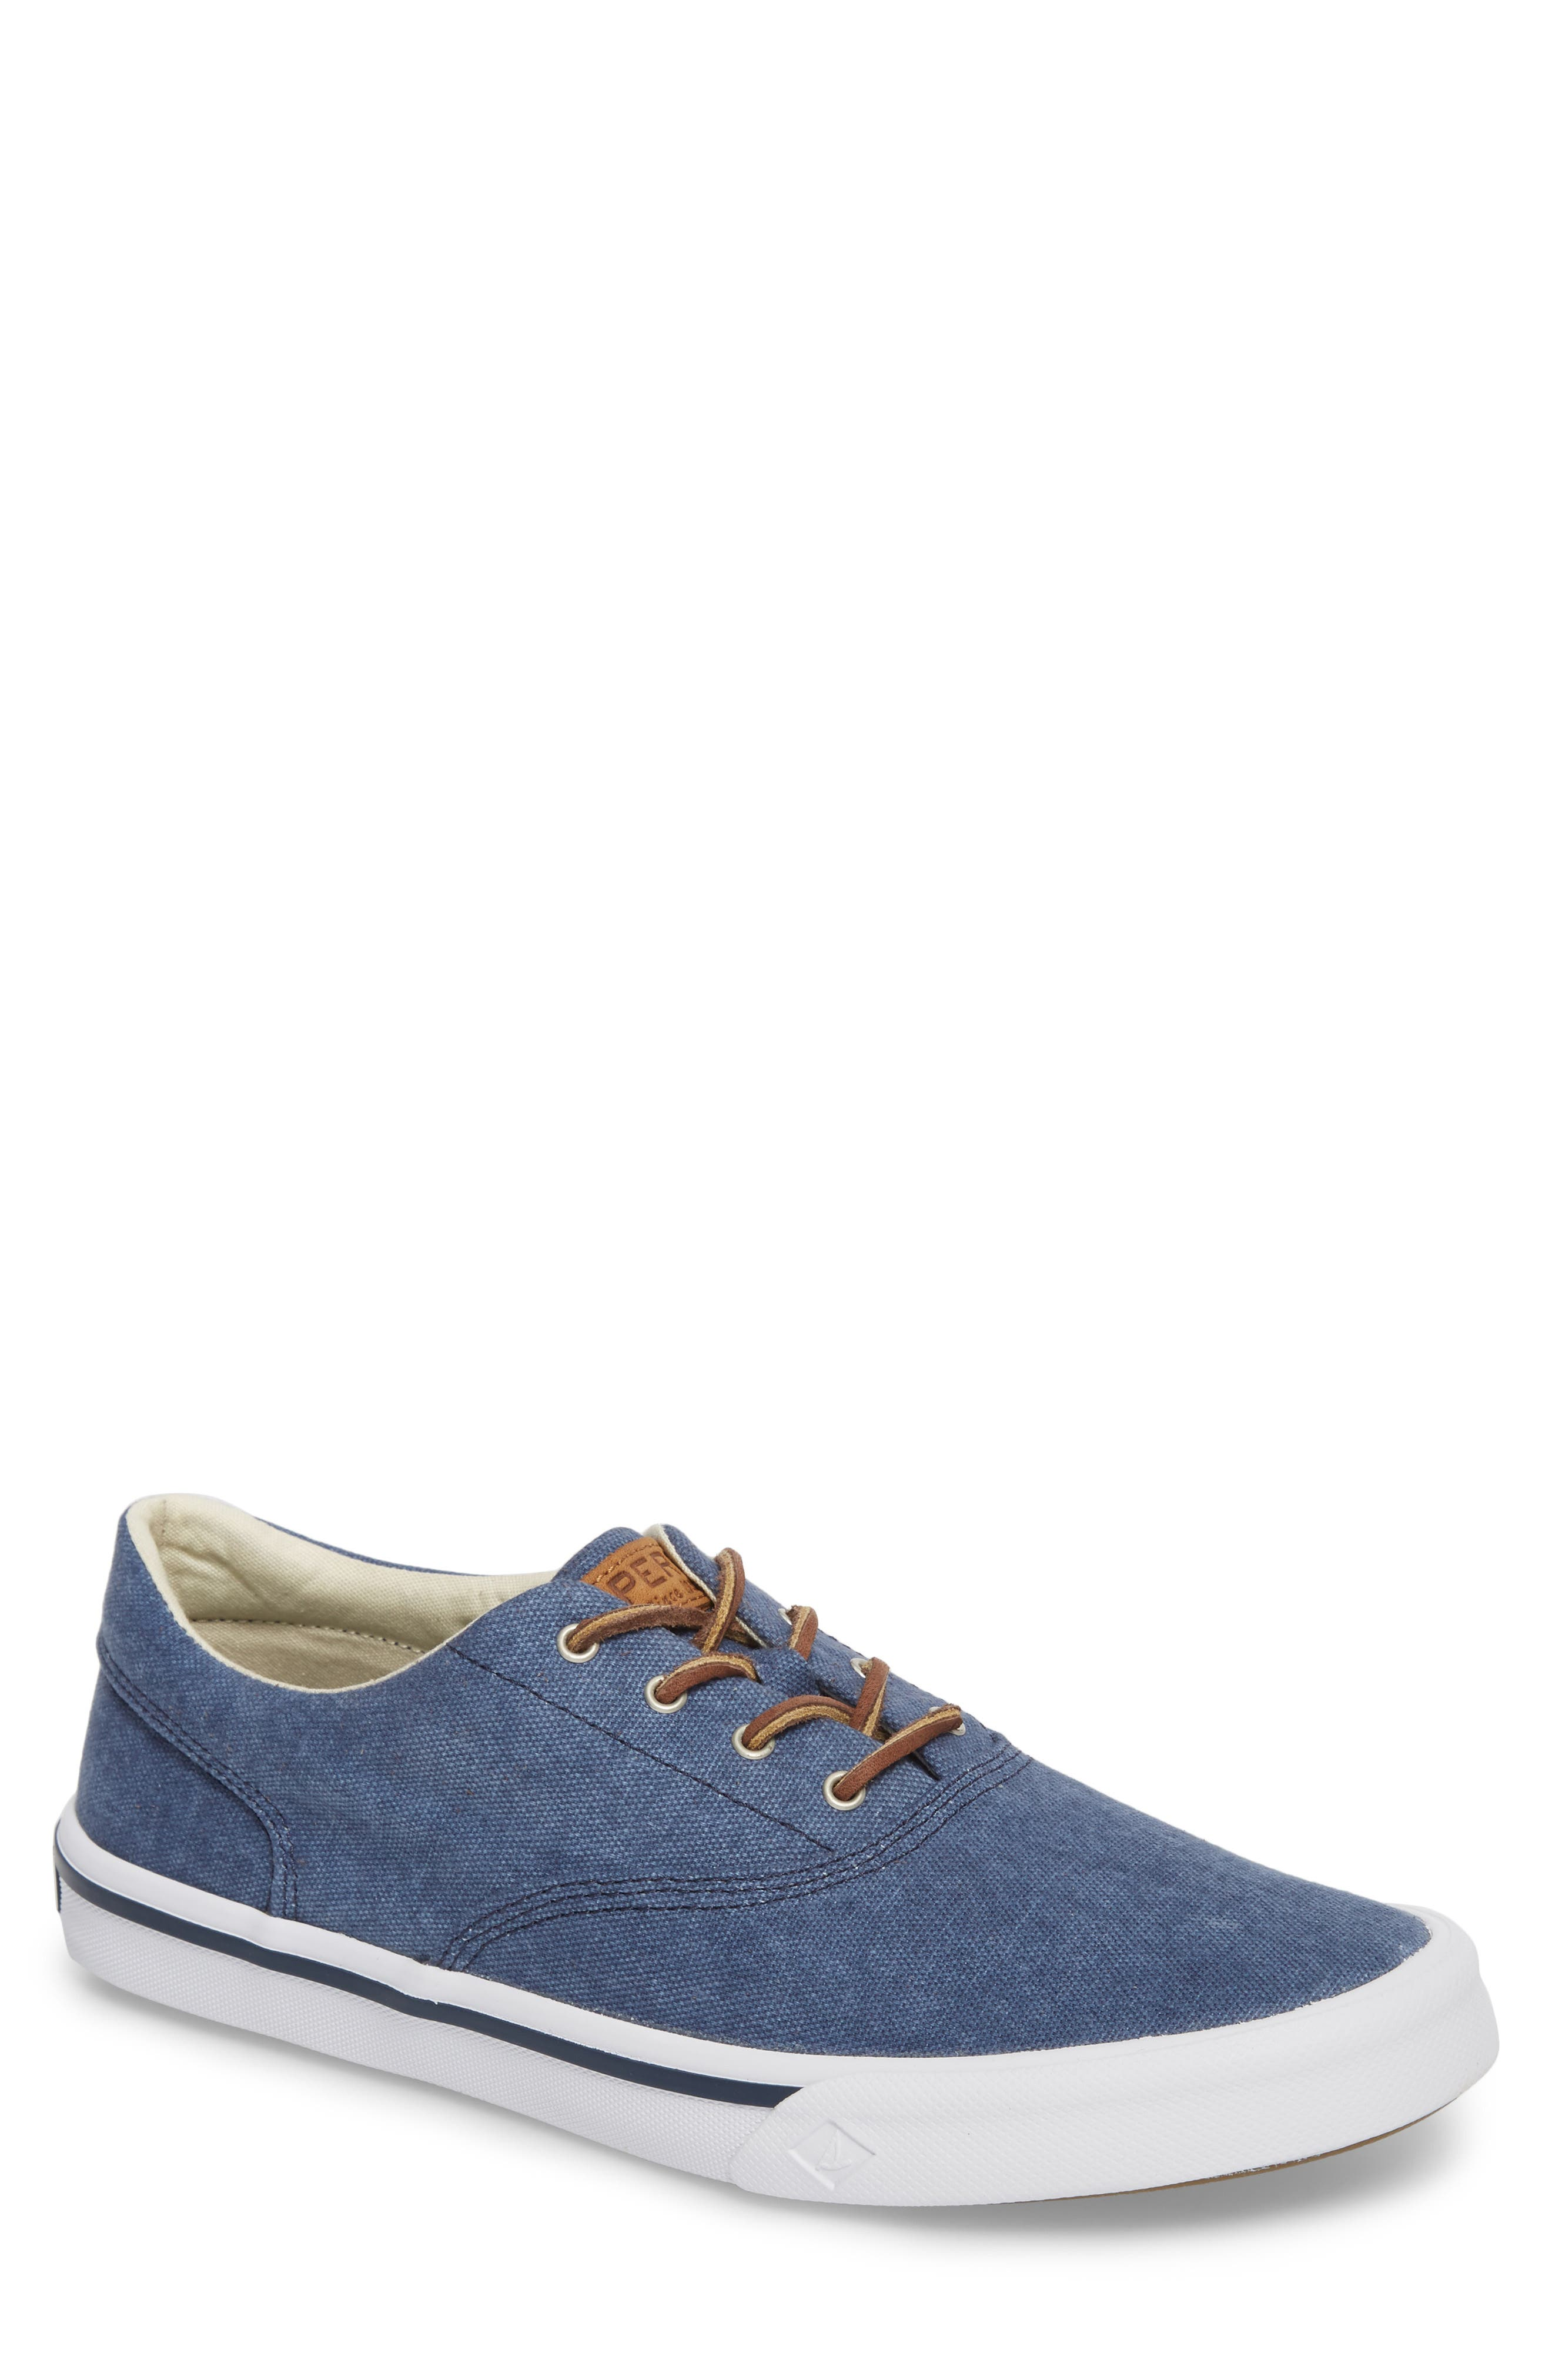 SPERRY 'Striper LL' Sneaker, Main, color, NAVY FABRIC